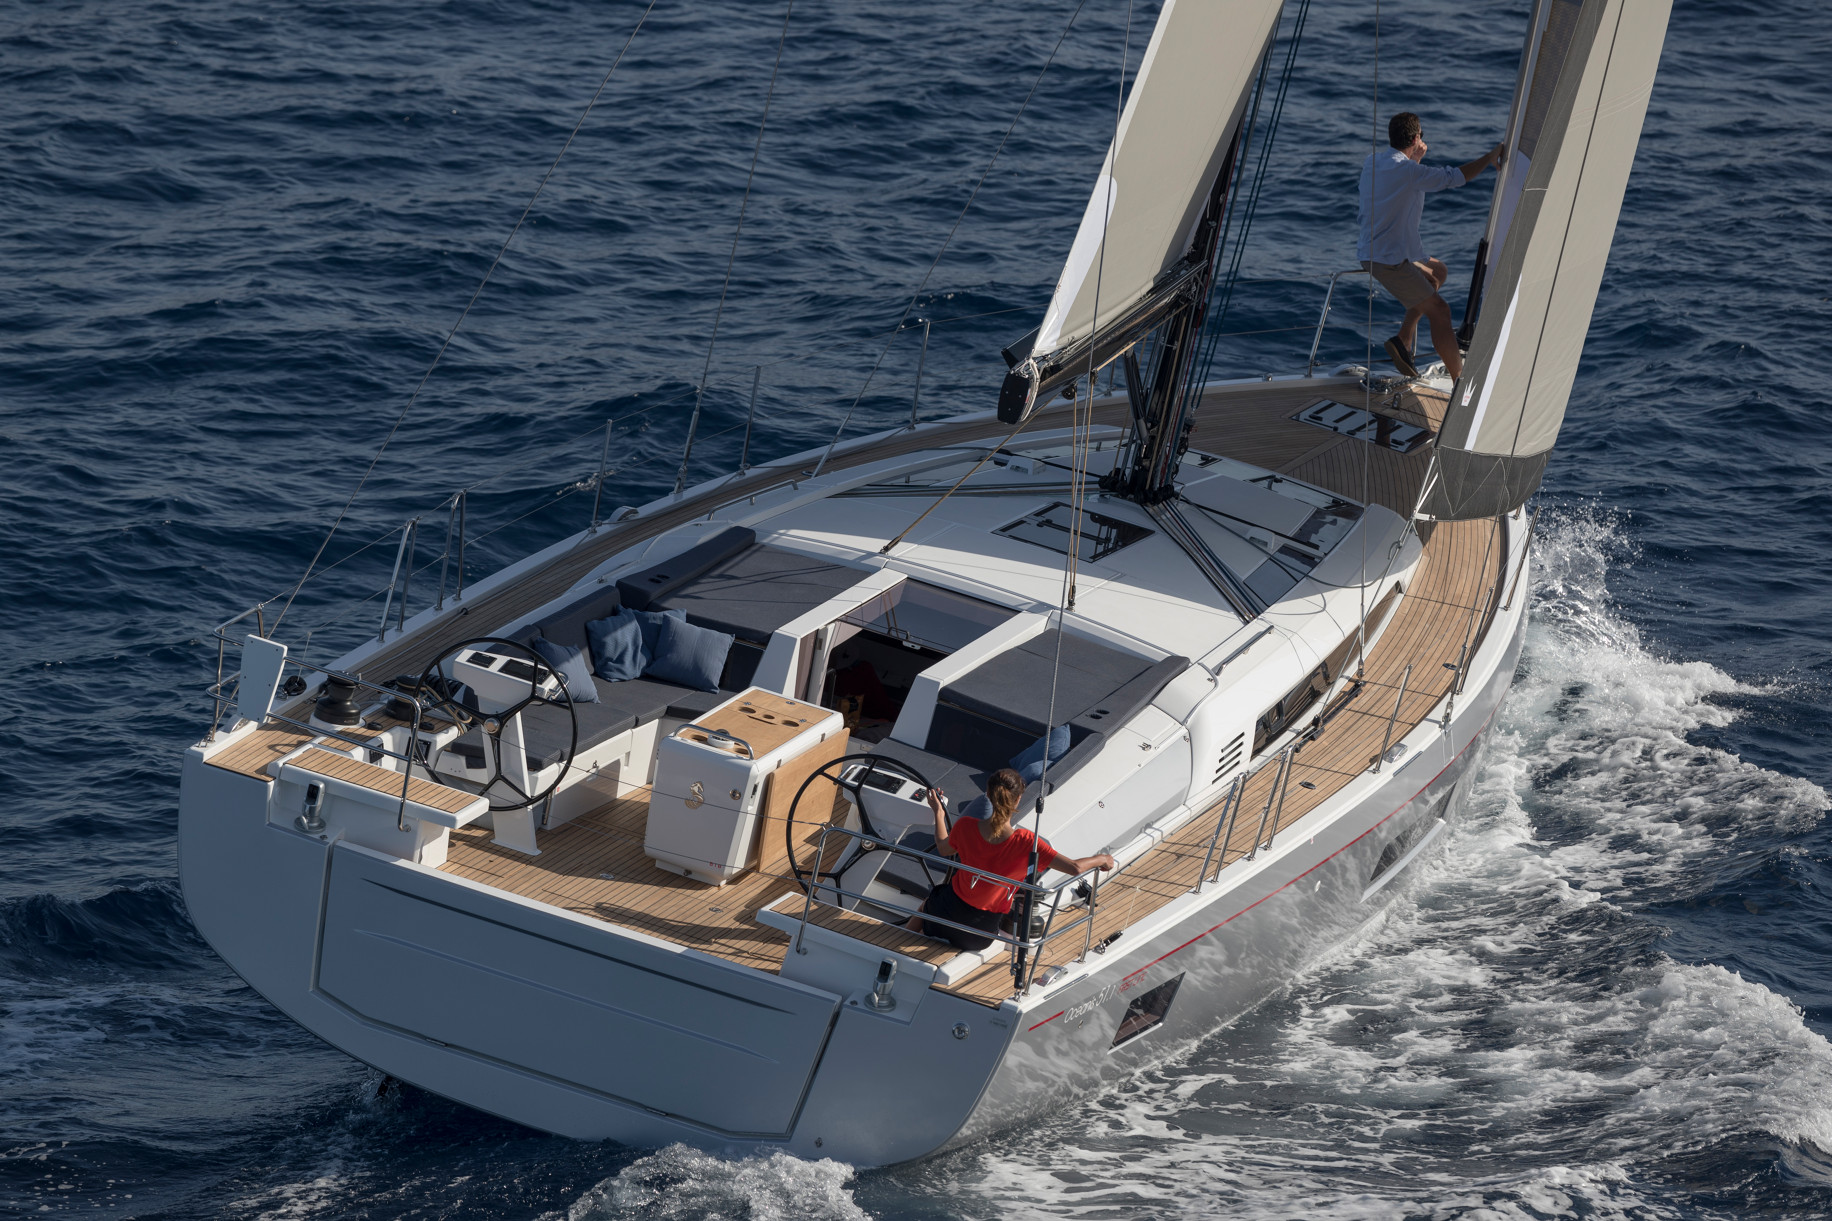 Beneteau Oceanis 511 New Amp Used Sailboats And